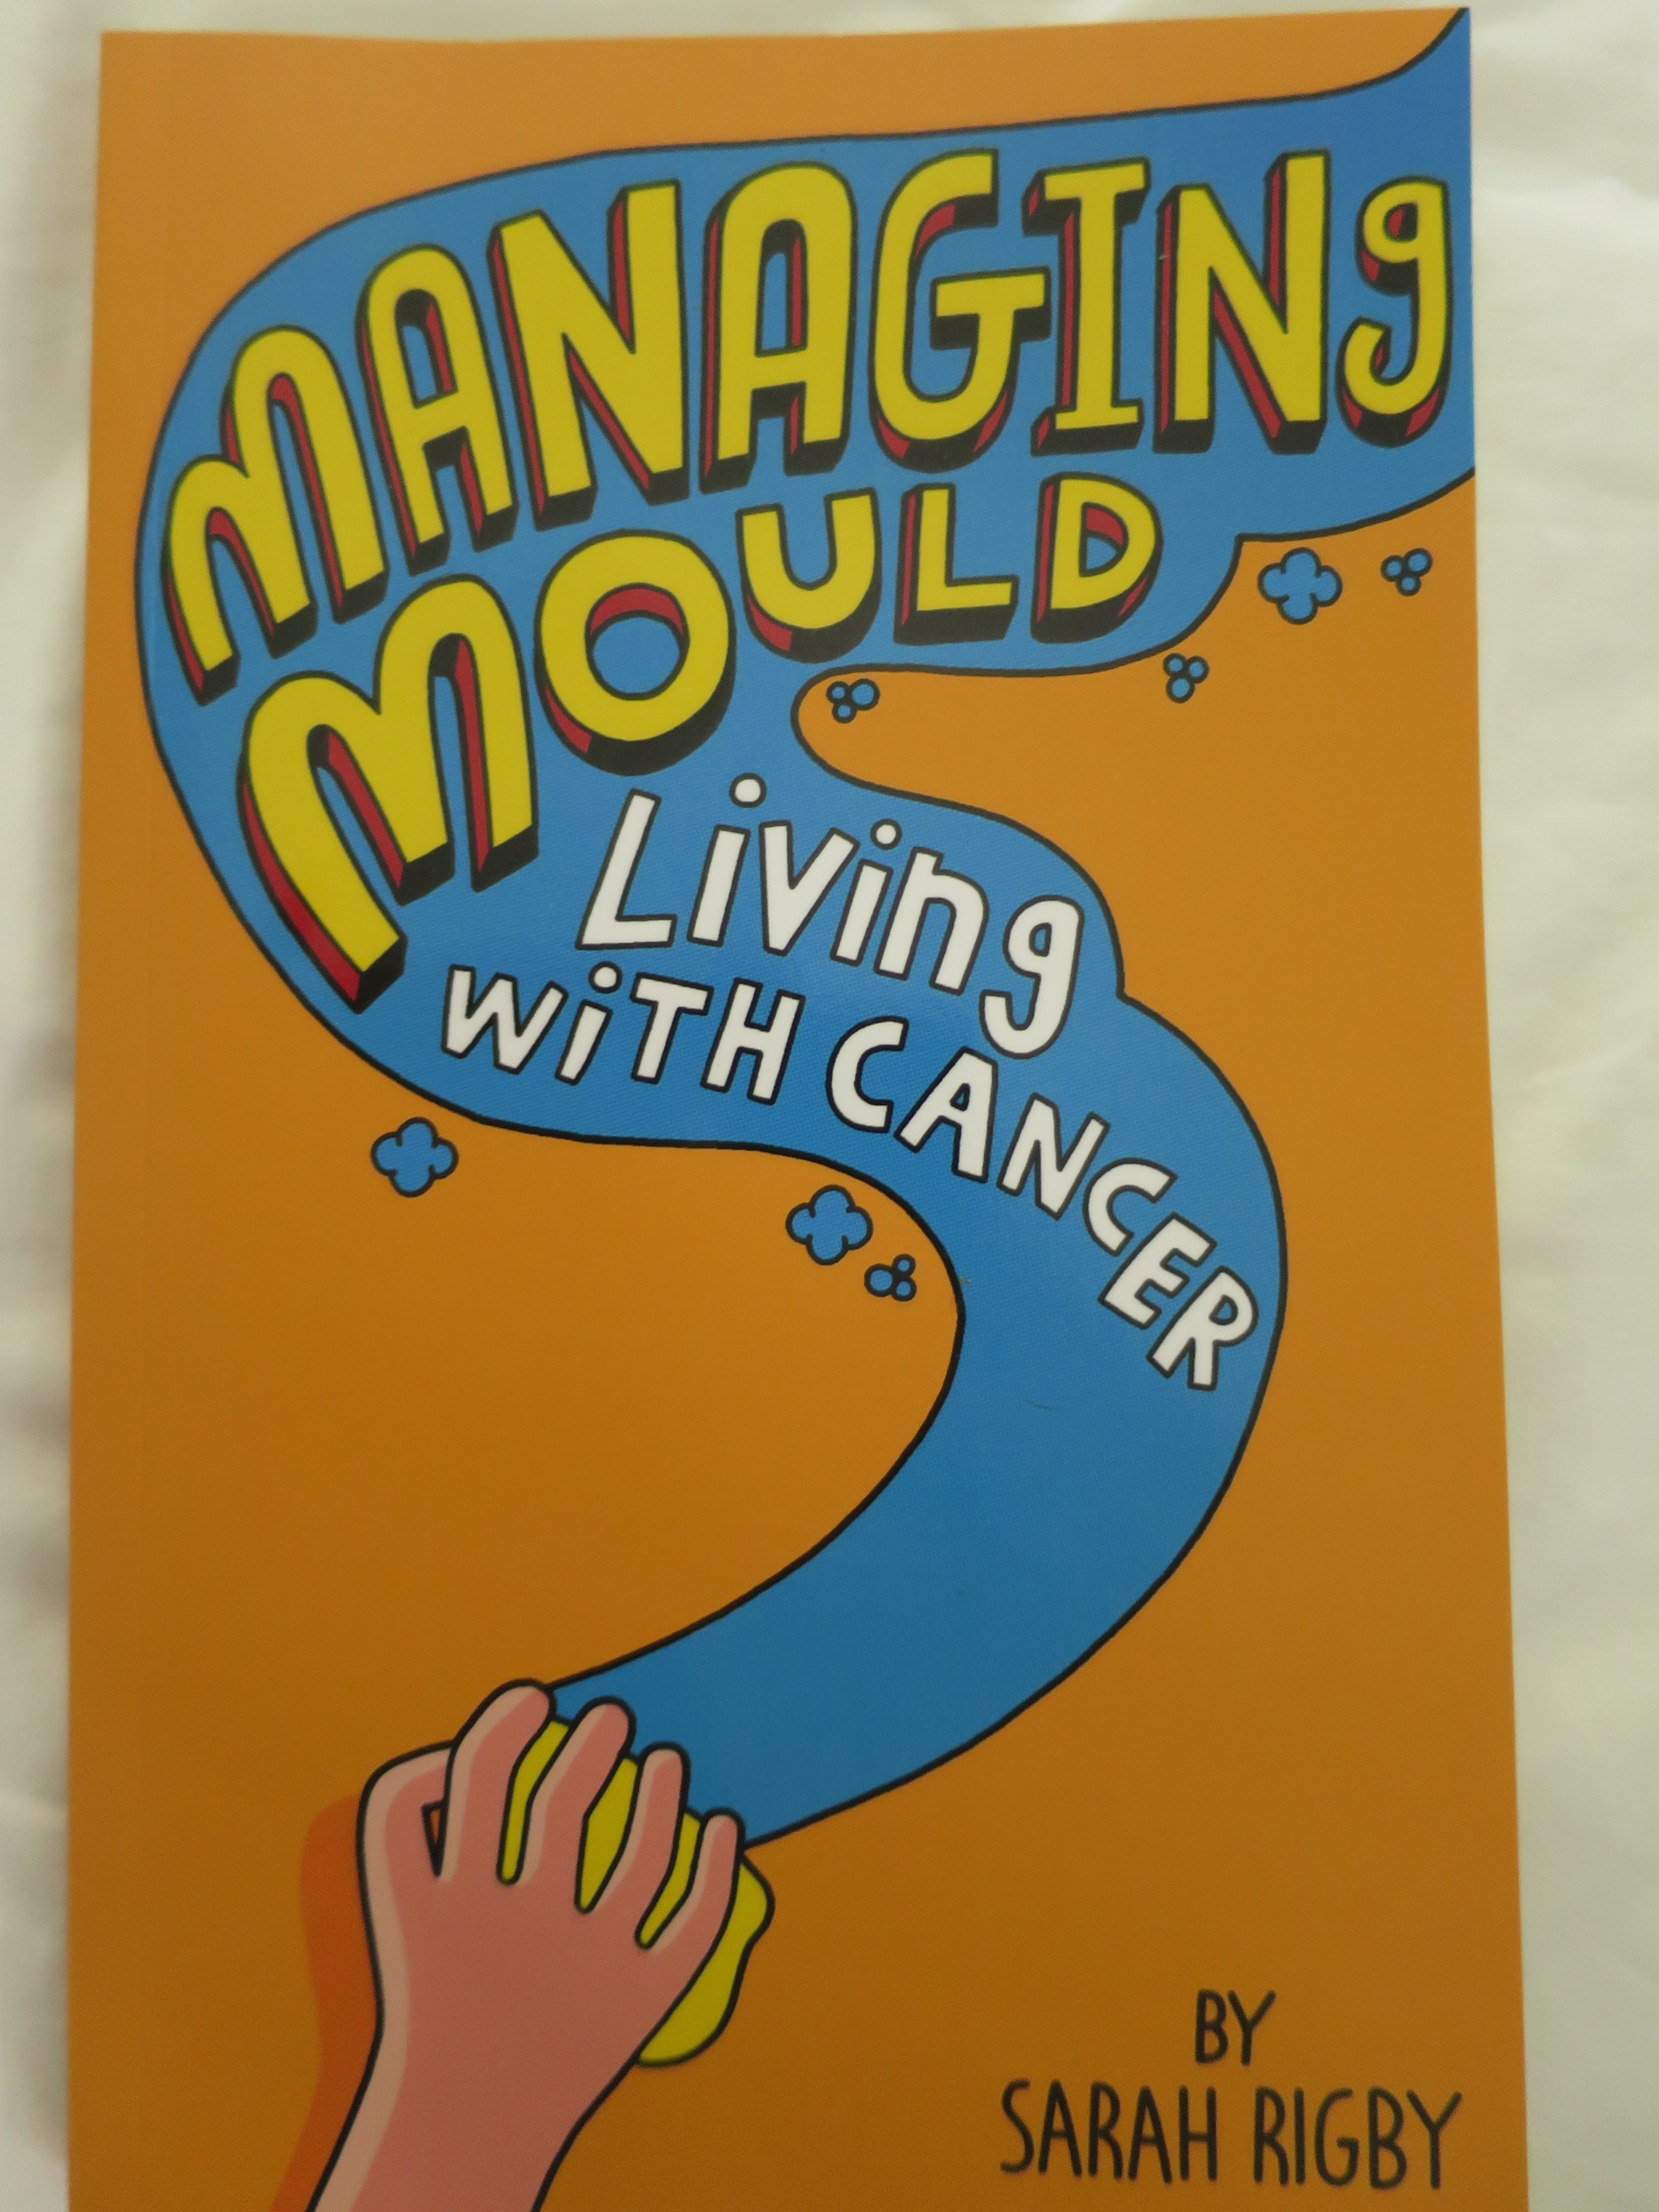 managing mould living with cancer